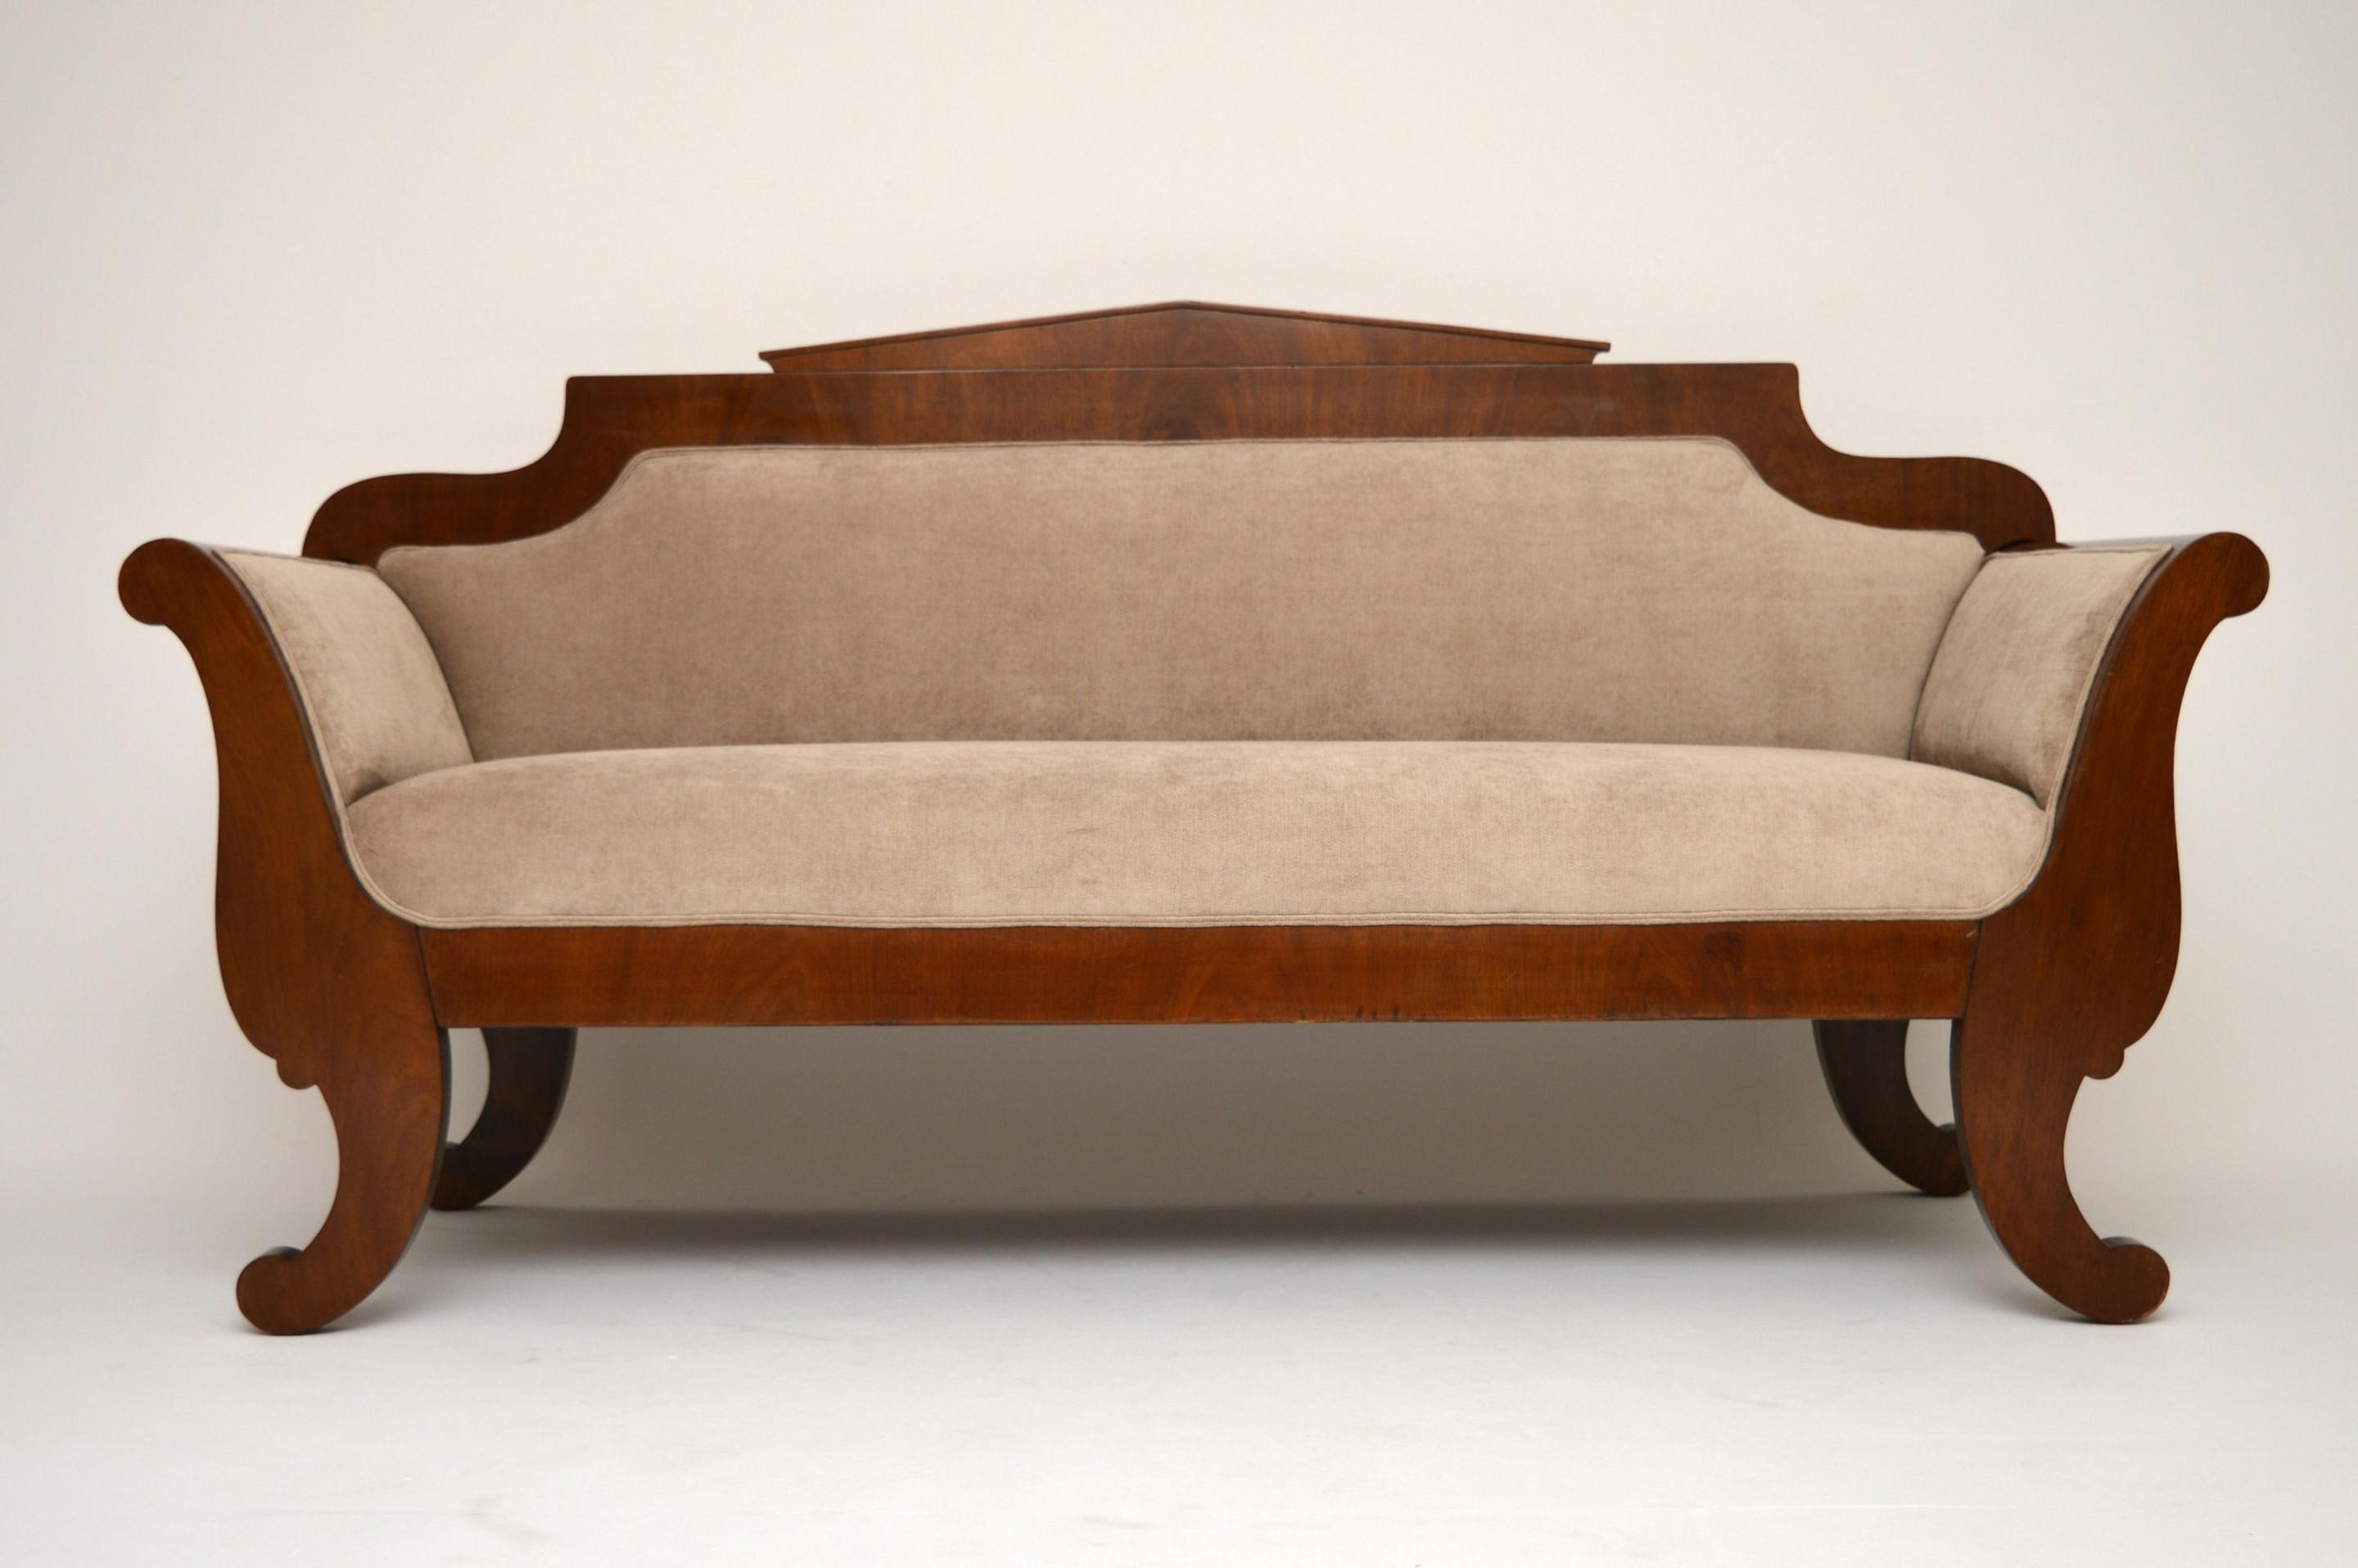 Antique Swedish Biedermeier Satinbirch Upholstered Sofa (1850 To Regarding Biedermeier Sofas (Image 7 of 20)